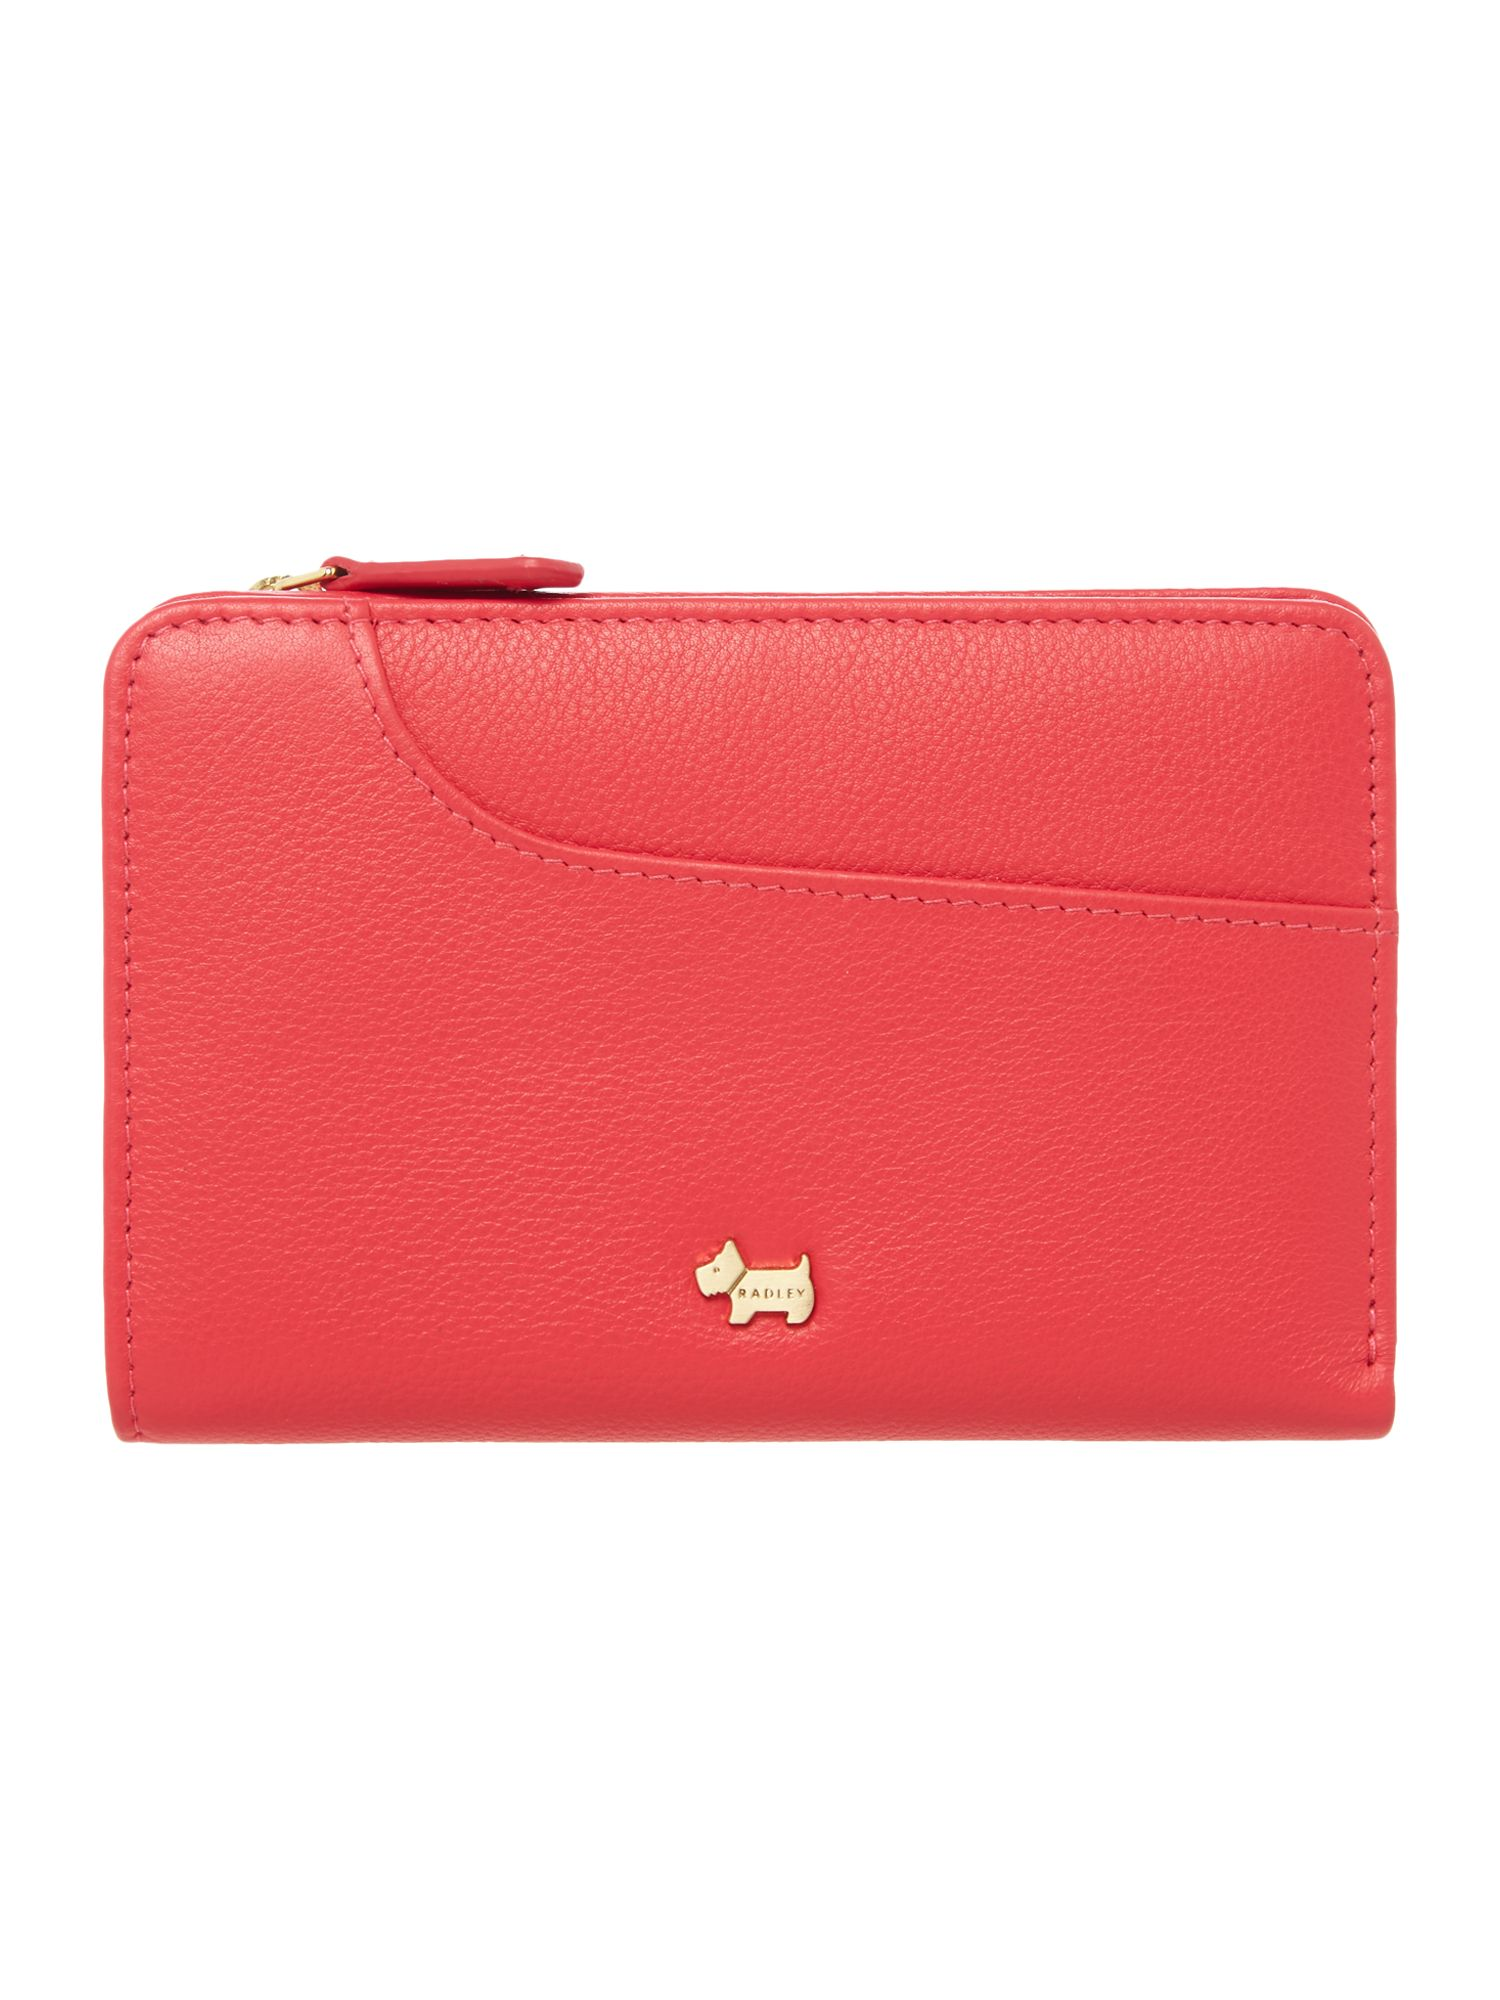 Radley Pocket bag slg medium zip purse Pink